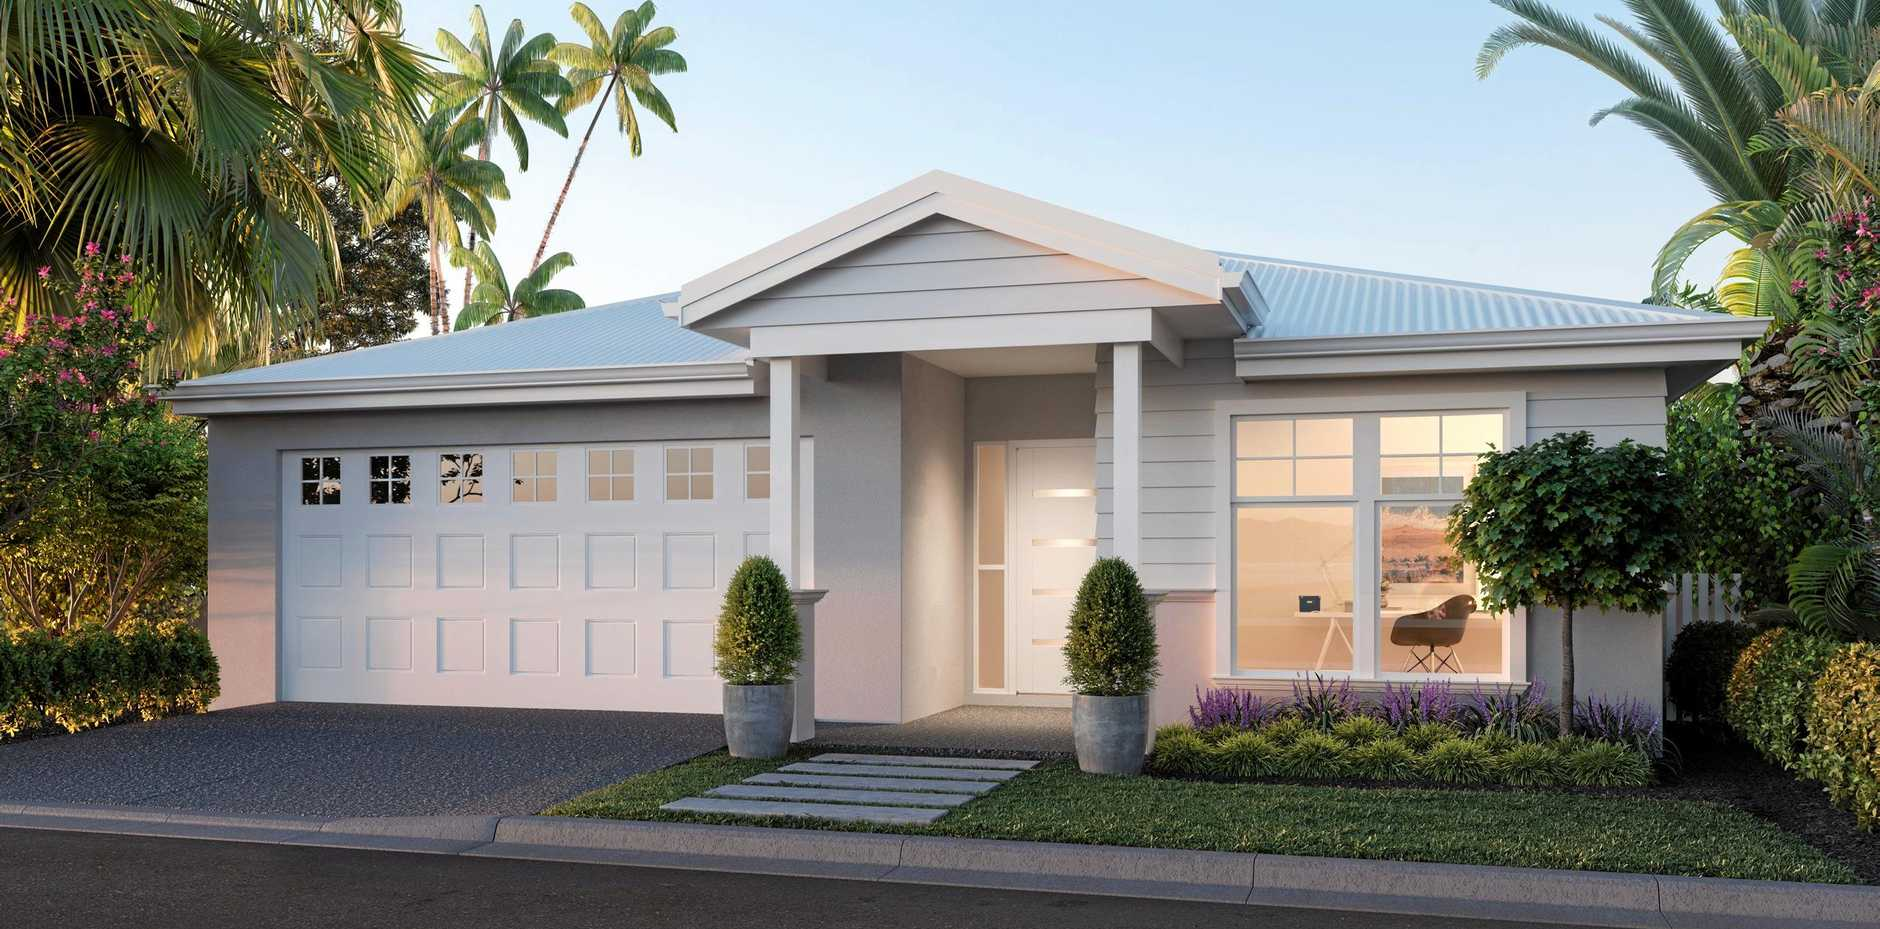 APPROVED: An artist's impression of one of the homes as part of the Bargara Waters development. Pictured below: Andre Hayek.